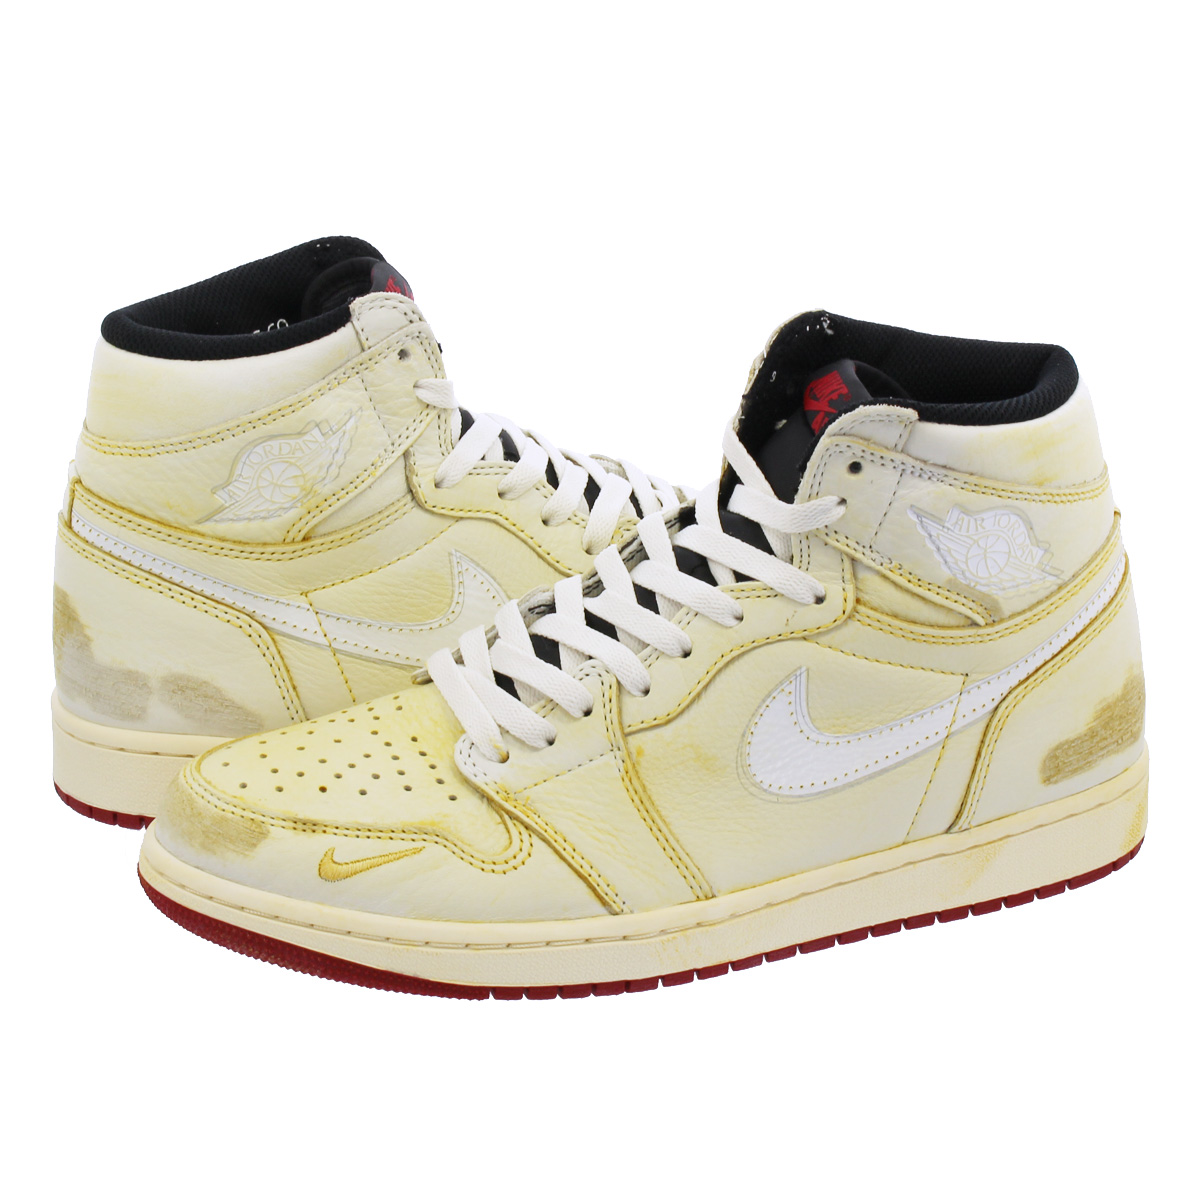 NIKE AIR JORDAN 1 RETRO HIGH OG 【NIGEL SYLVESTER】 SAIL/VARSITY RED/REFLECT SILVER/WHITE bv1803-106